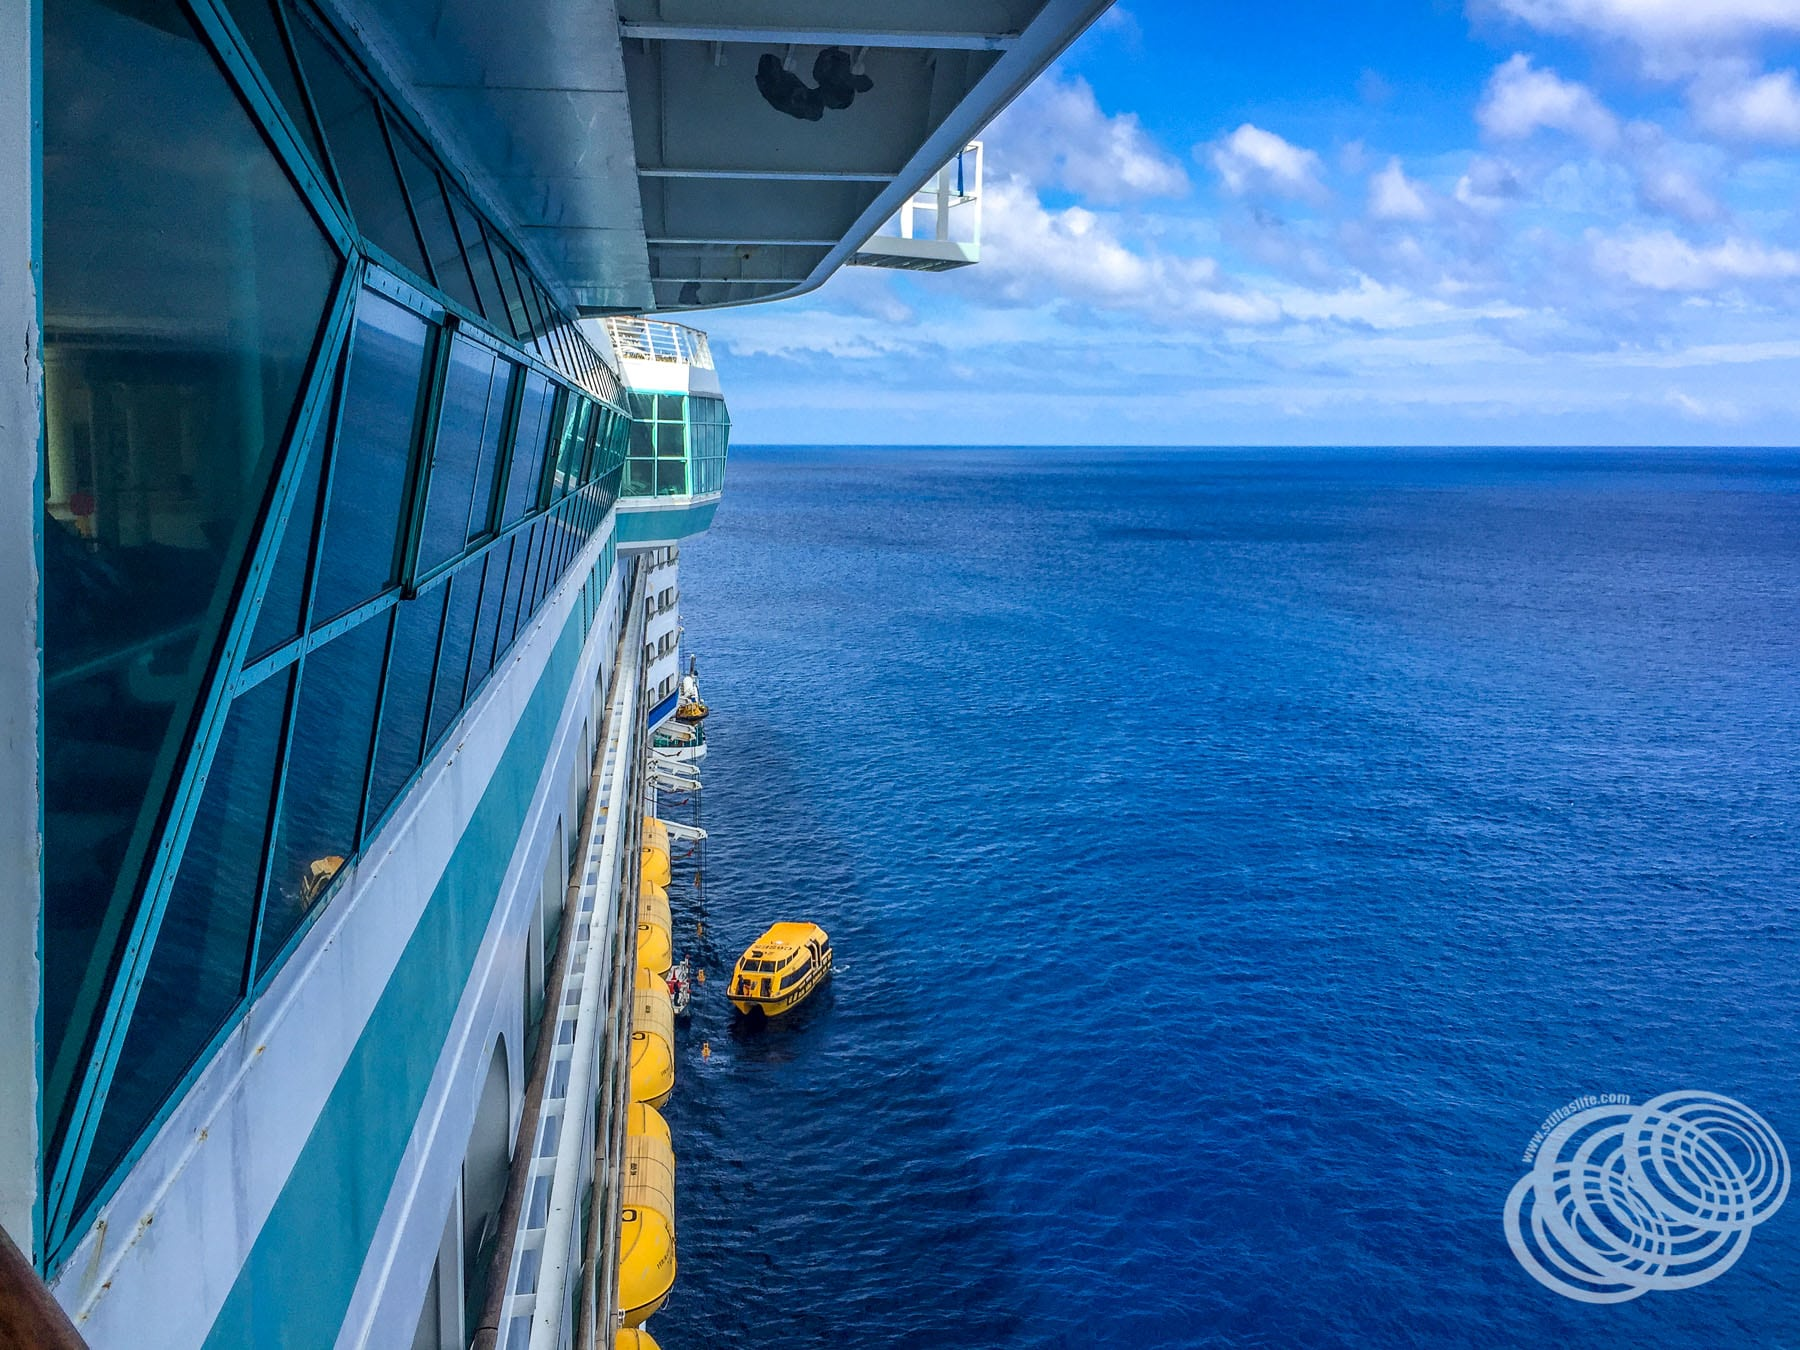 11 tips for first time cruisers that I wish I'd known before my